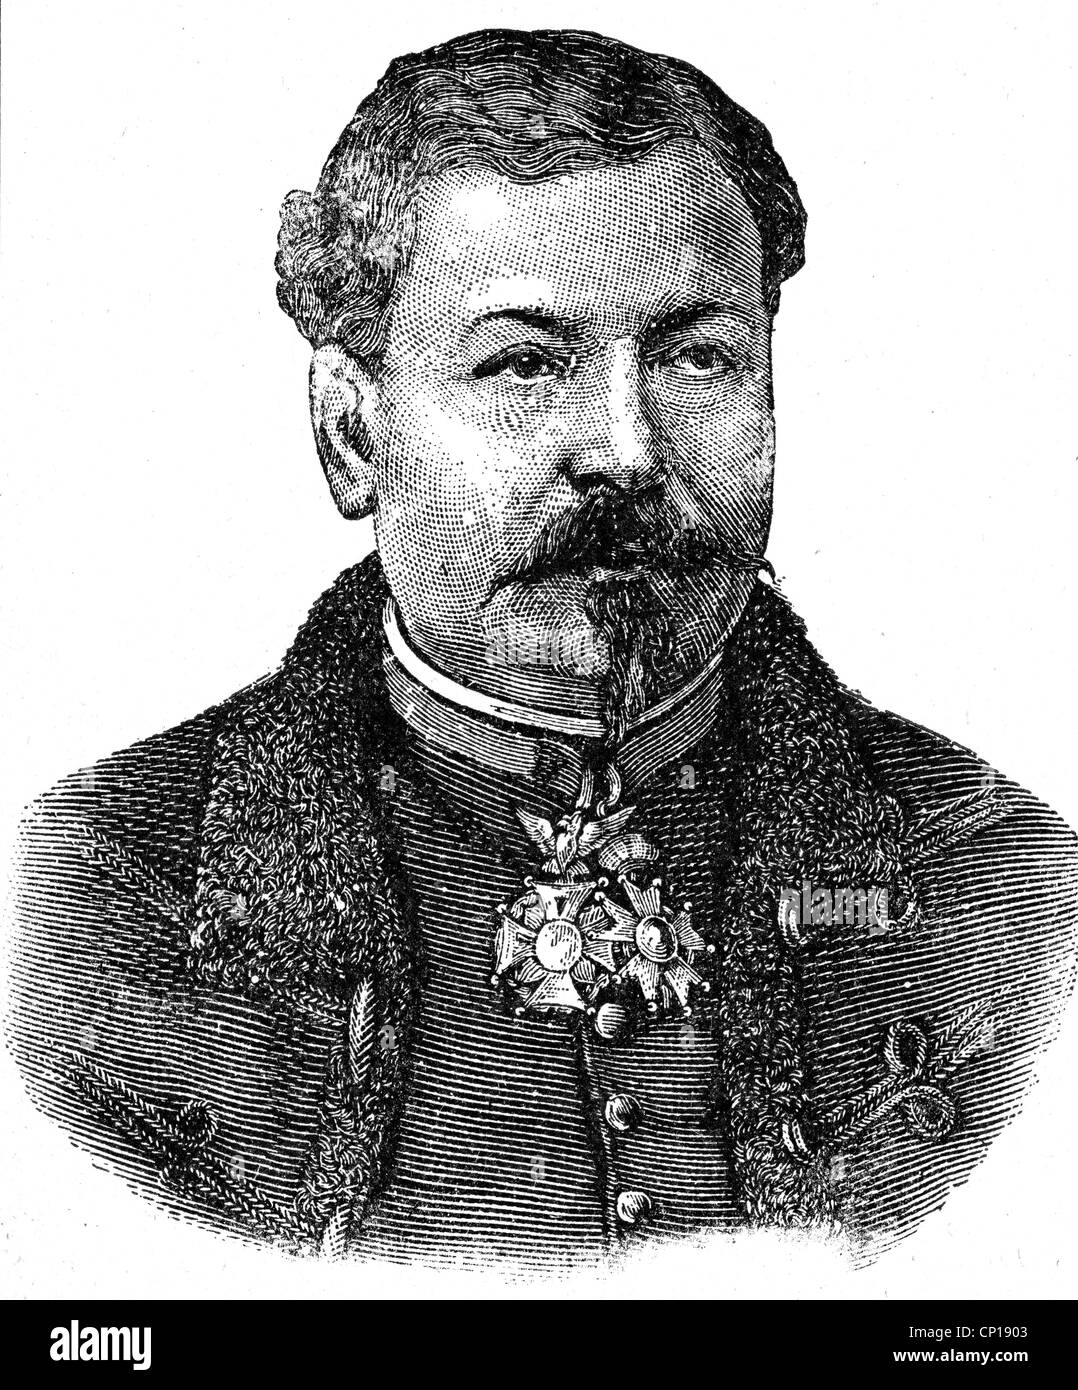 Margueritte, Jean-Auguste, 15.1.1823 - 6.9.1870, French general, portrait, wood engraving, 1871, Additional-Rights - Stock Image